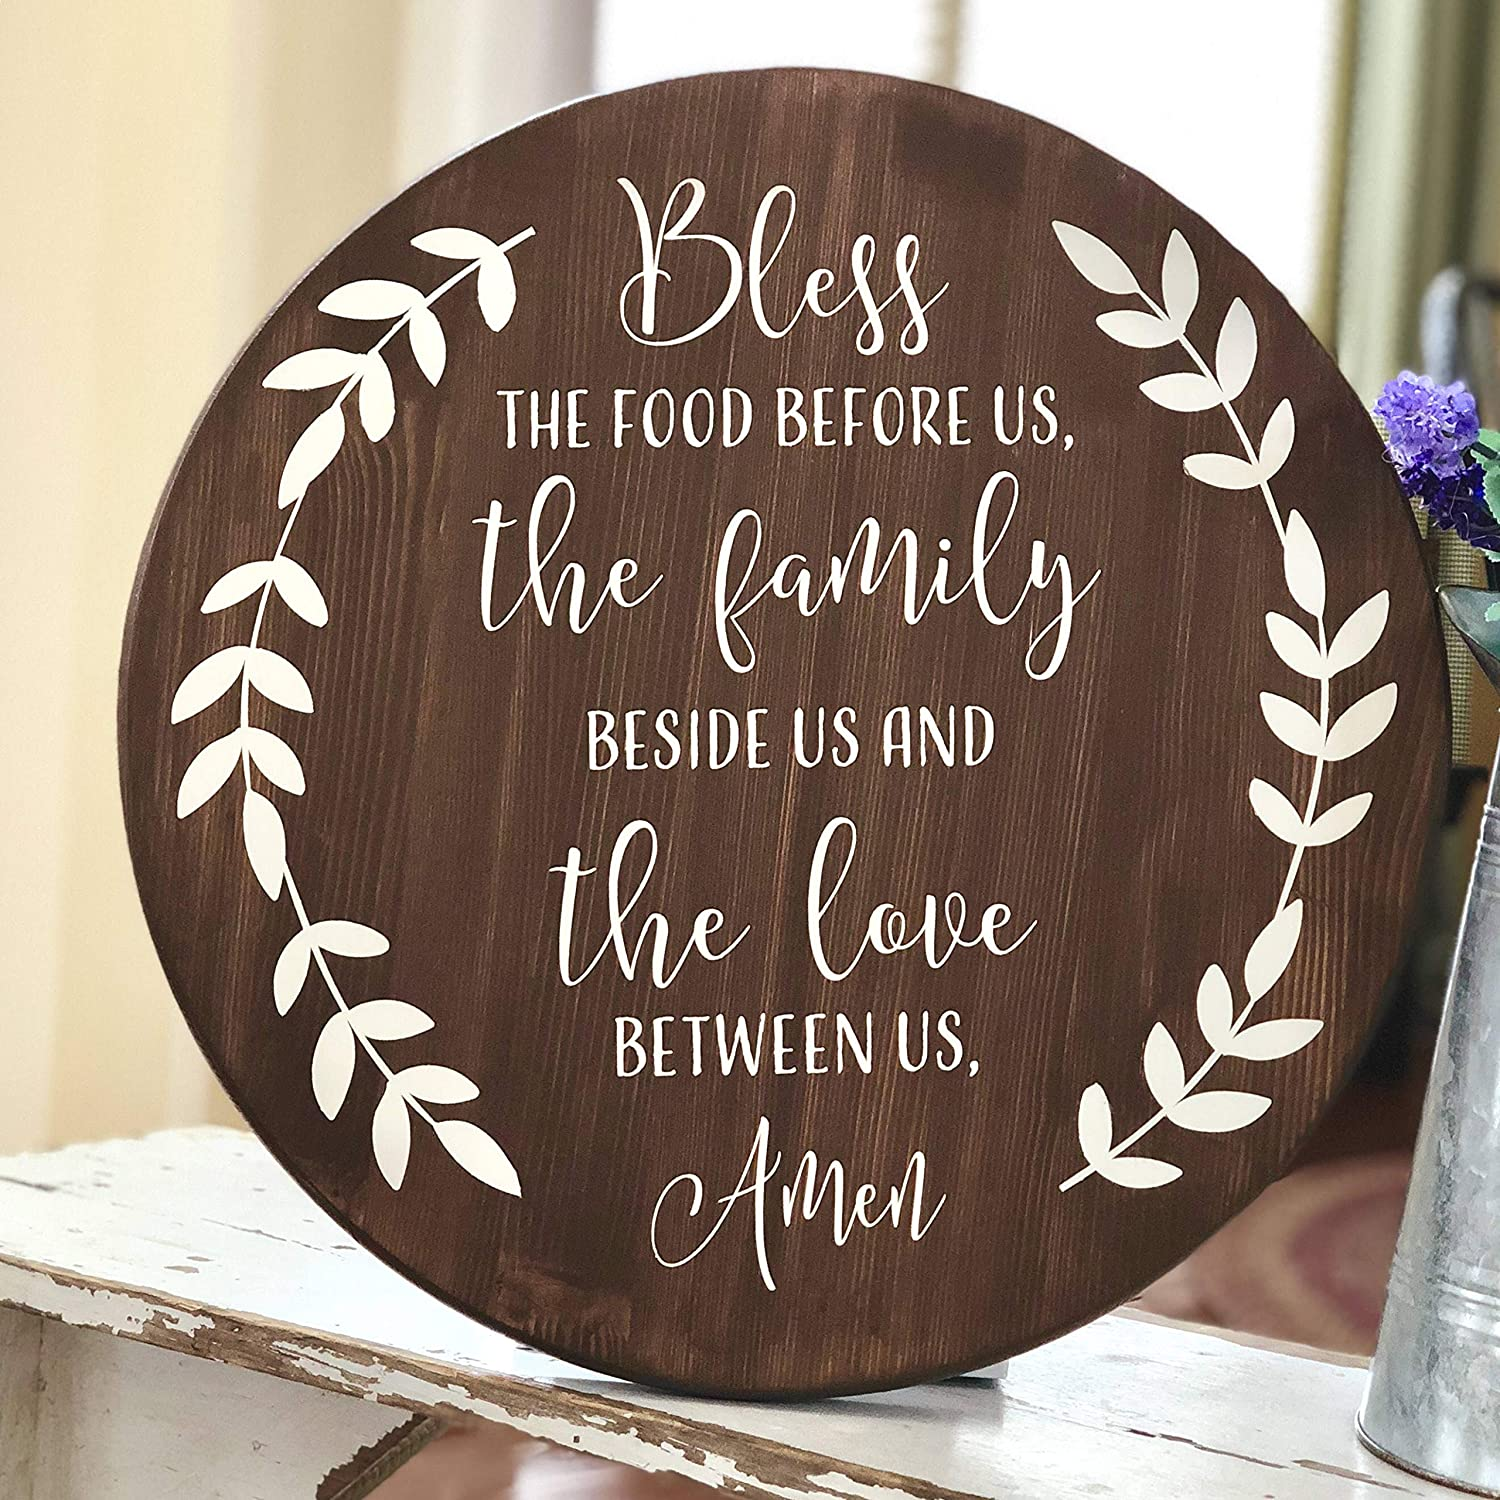 Bless The Food Round Wood Sign Meal Prayer Sign Dinner Prayer Sign Farmhouse Prayer Rustic Round Sign Bless The Food Before Us